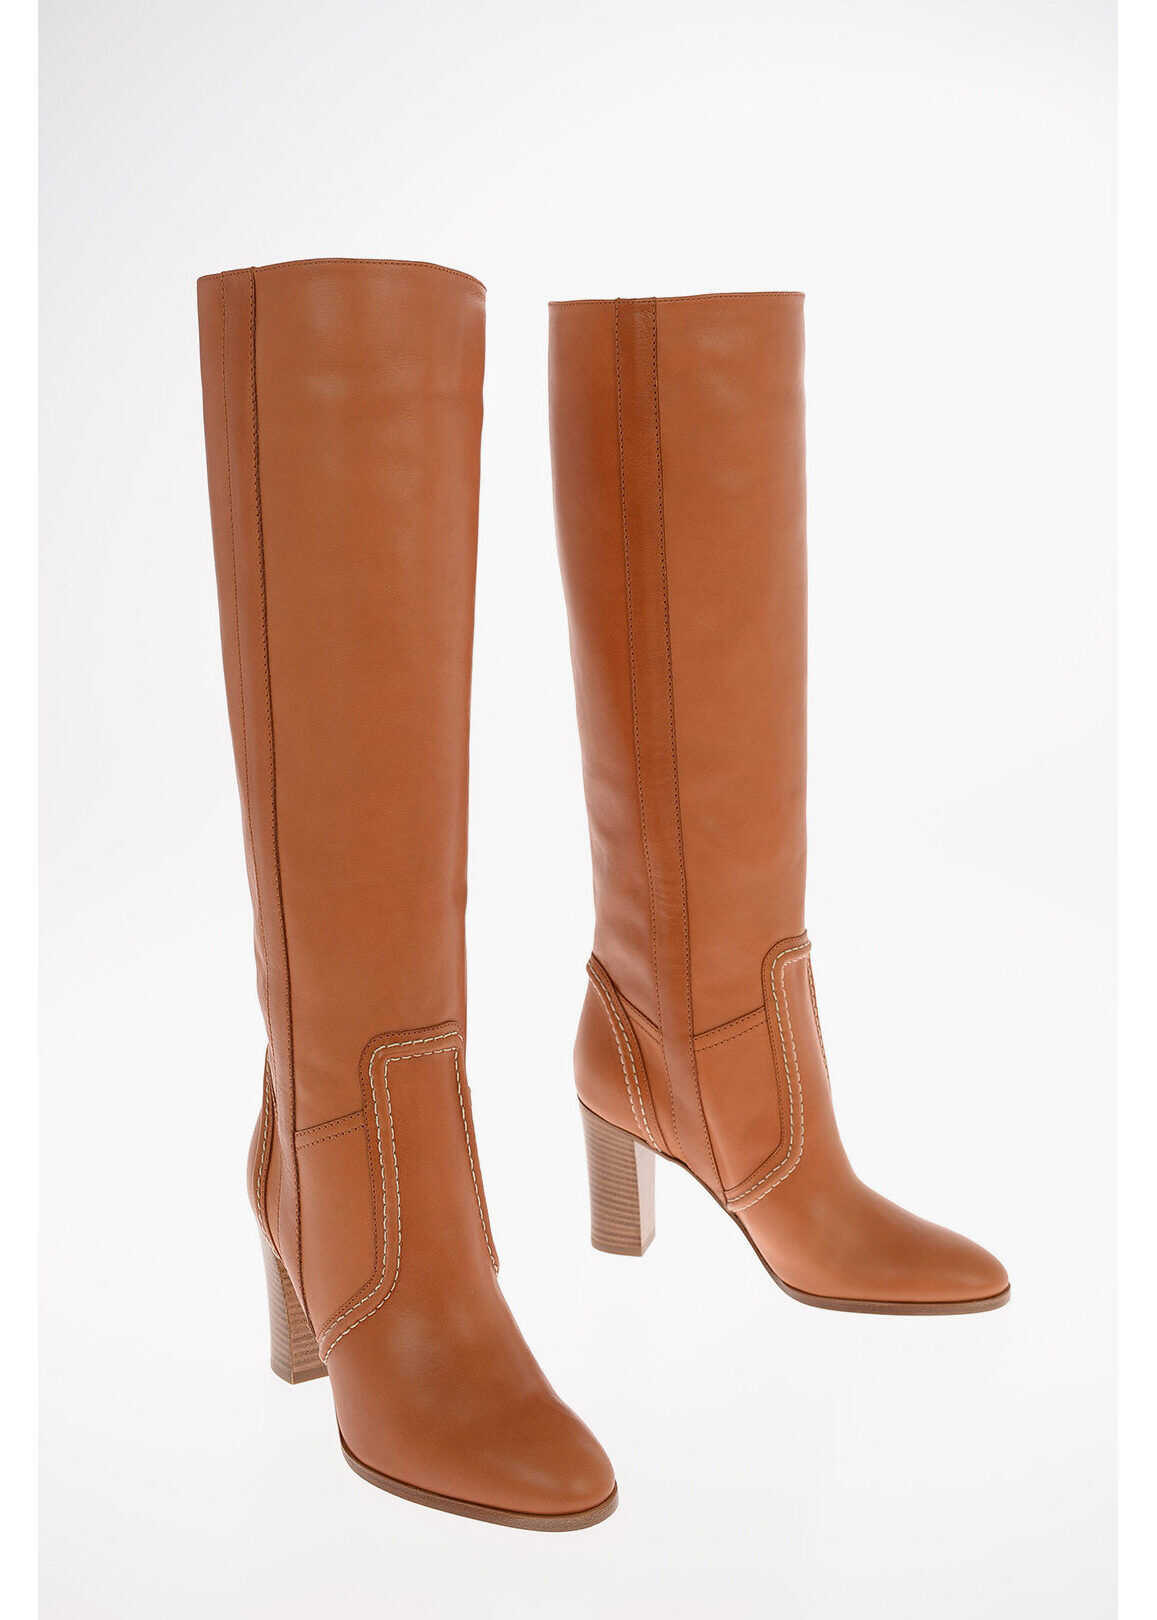 Céline Leather Pull On Knee High Boots 8cm BROWN imagine b-mall.ro